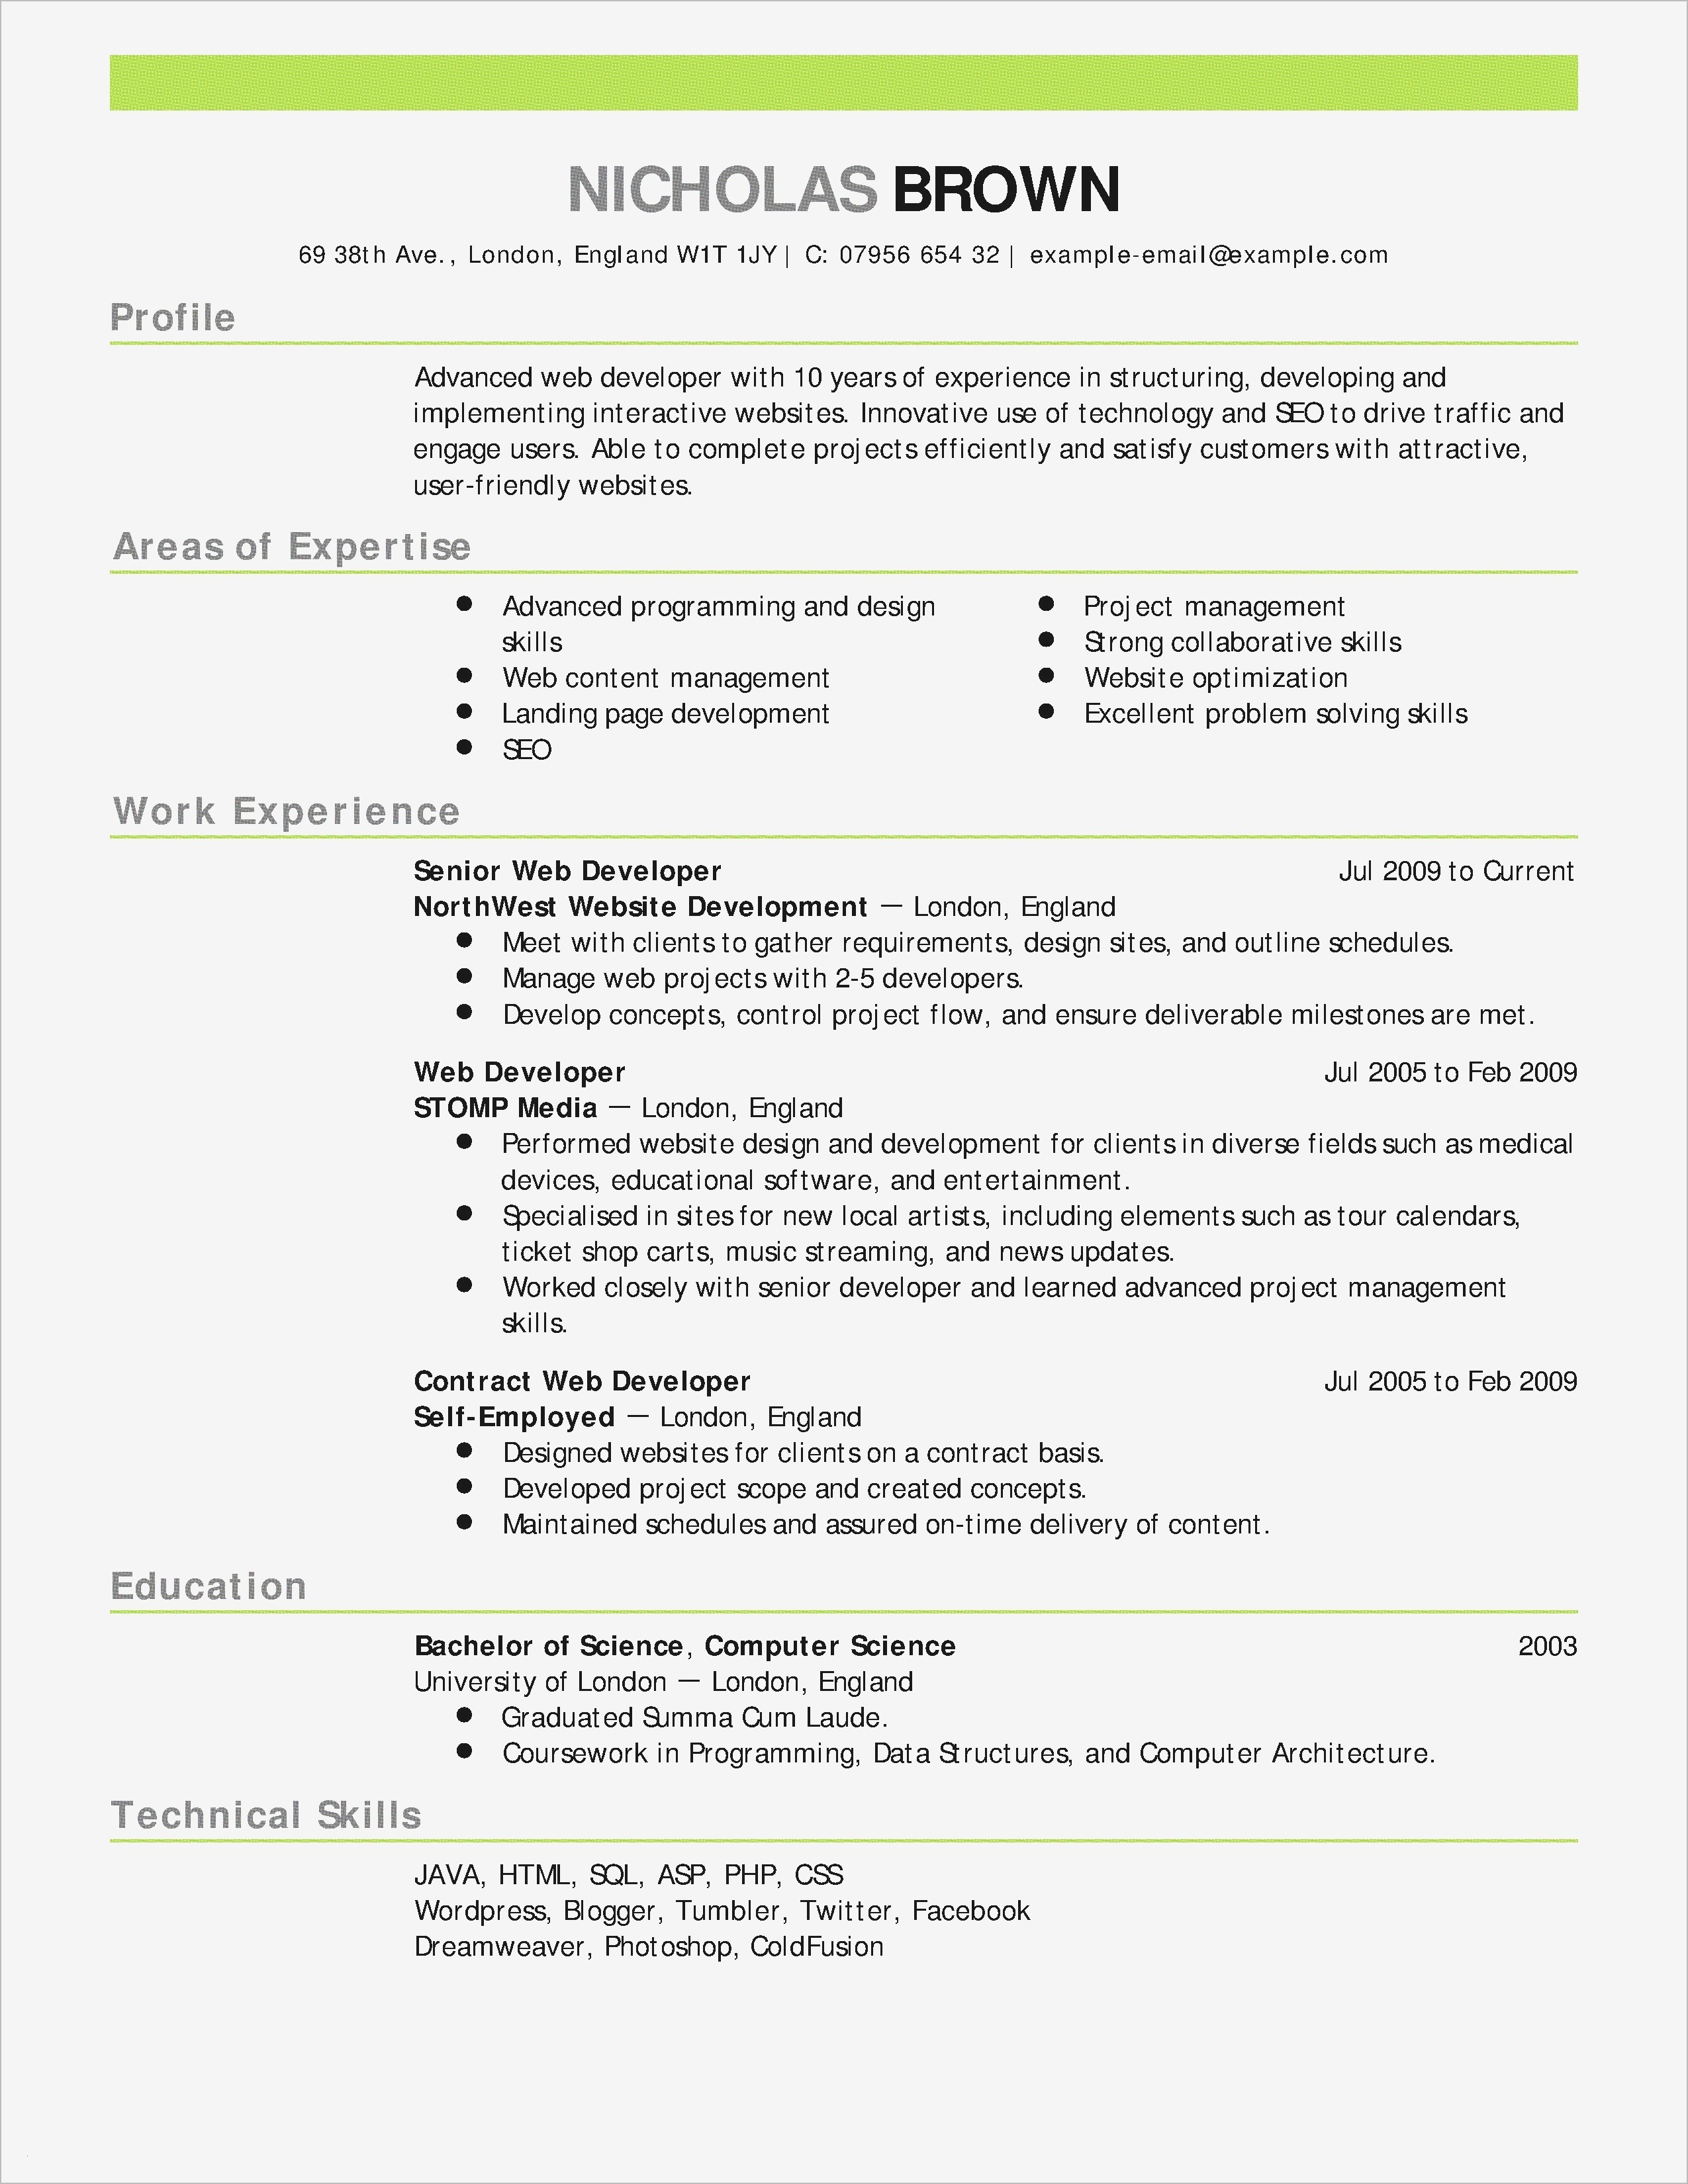 Is It Bad to Use A Resume Template - Bookkeeping Resume Samples New Bookkeeping Resume Sample New Fresh